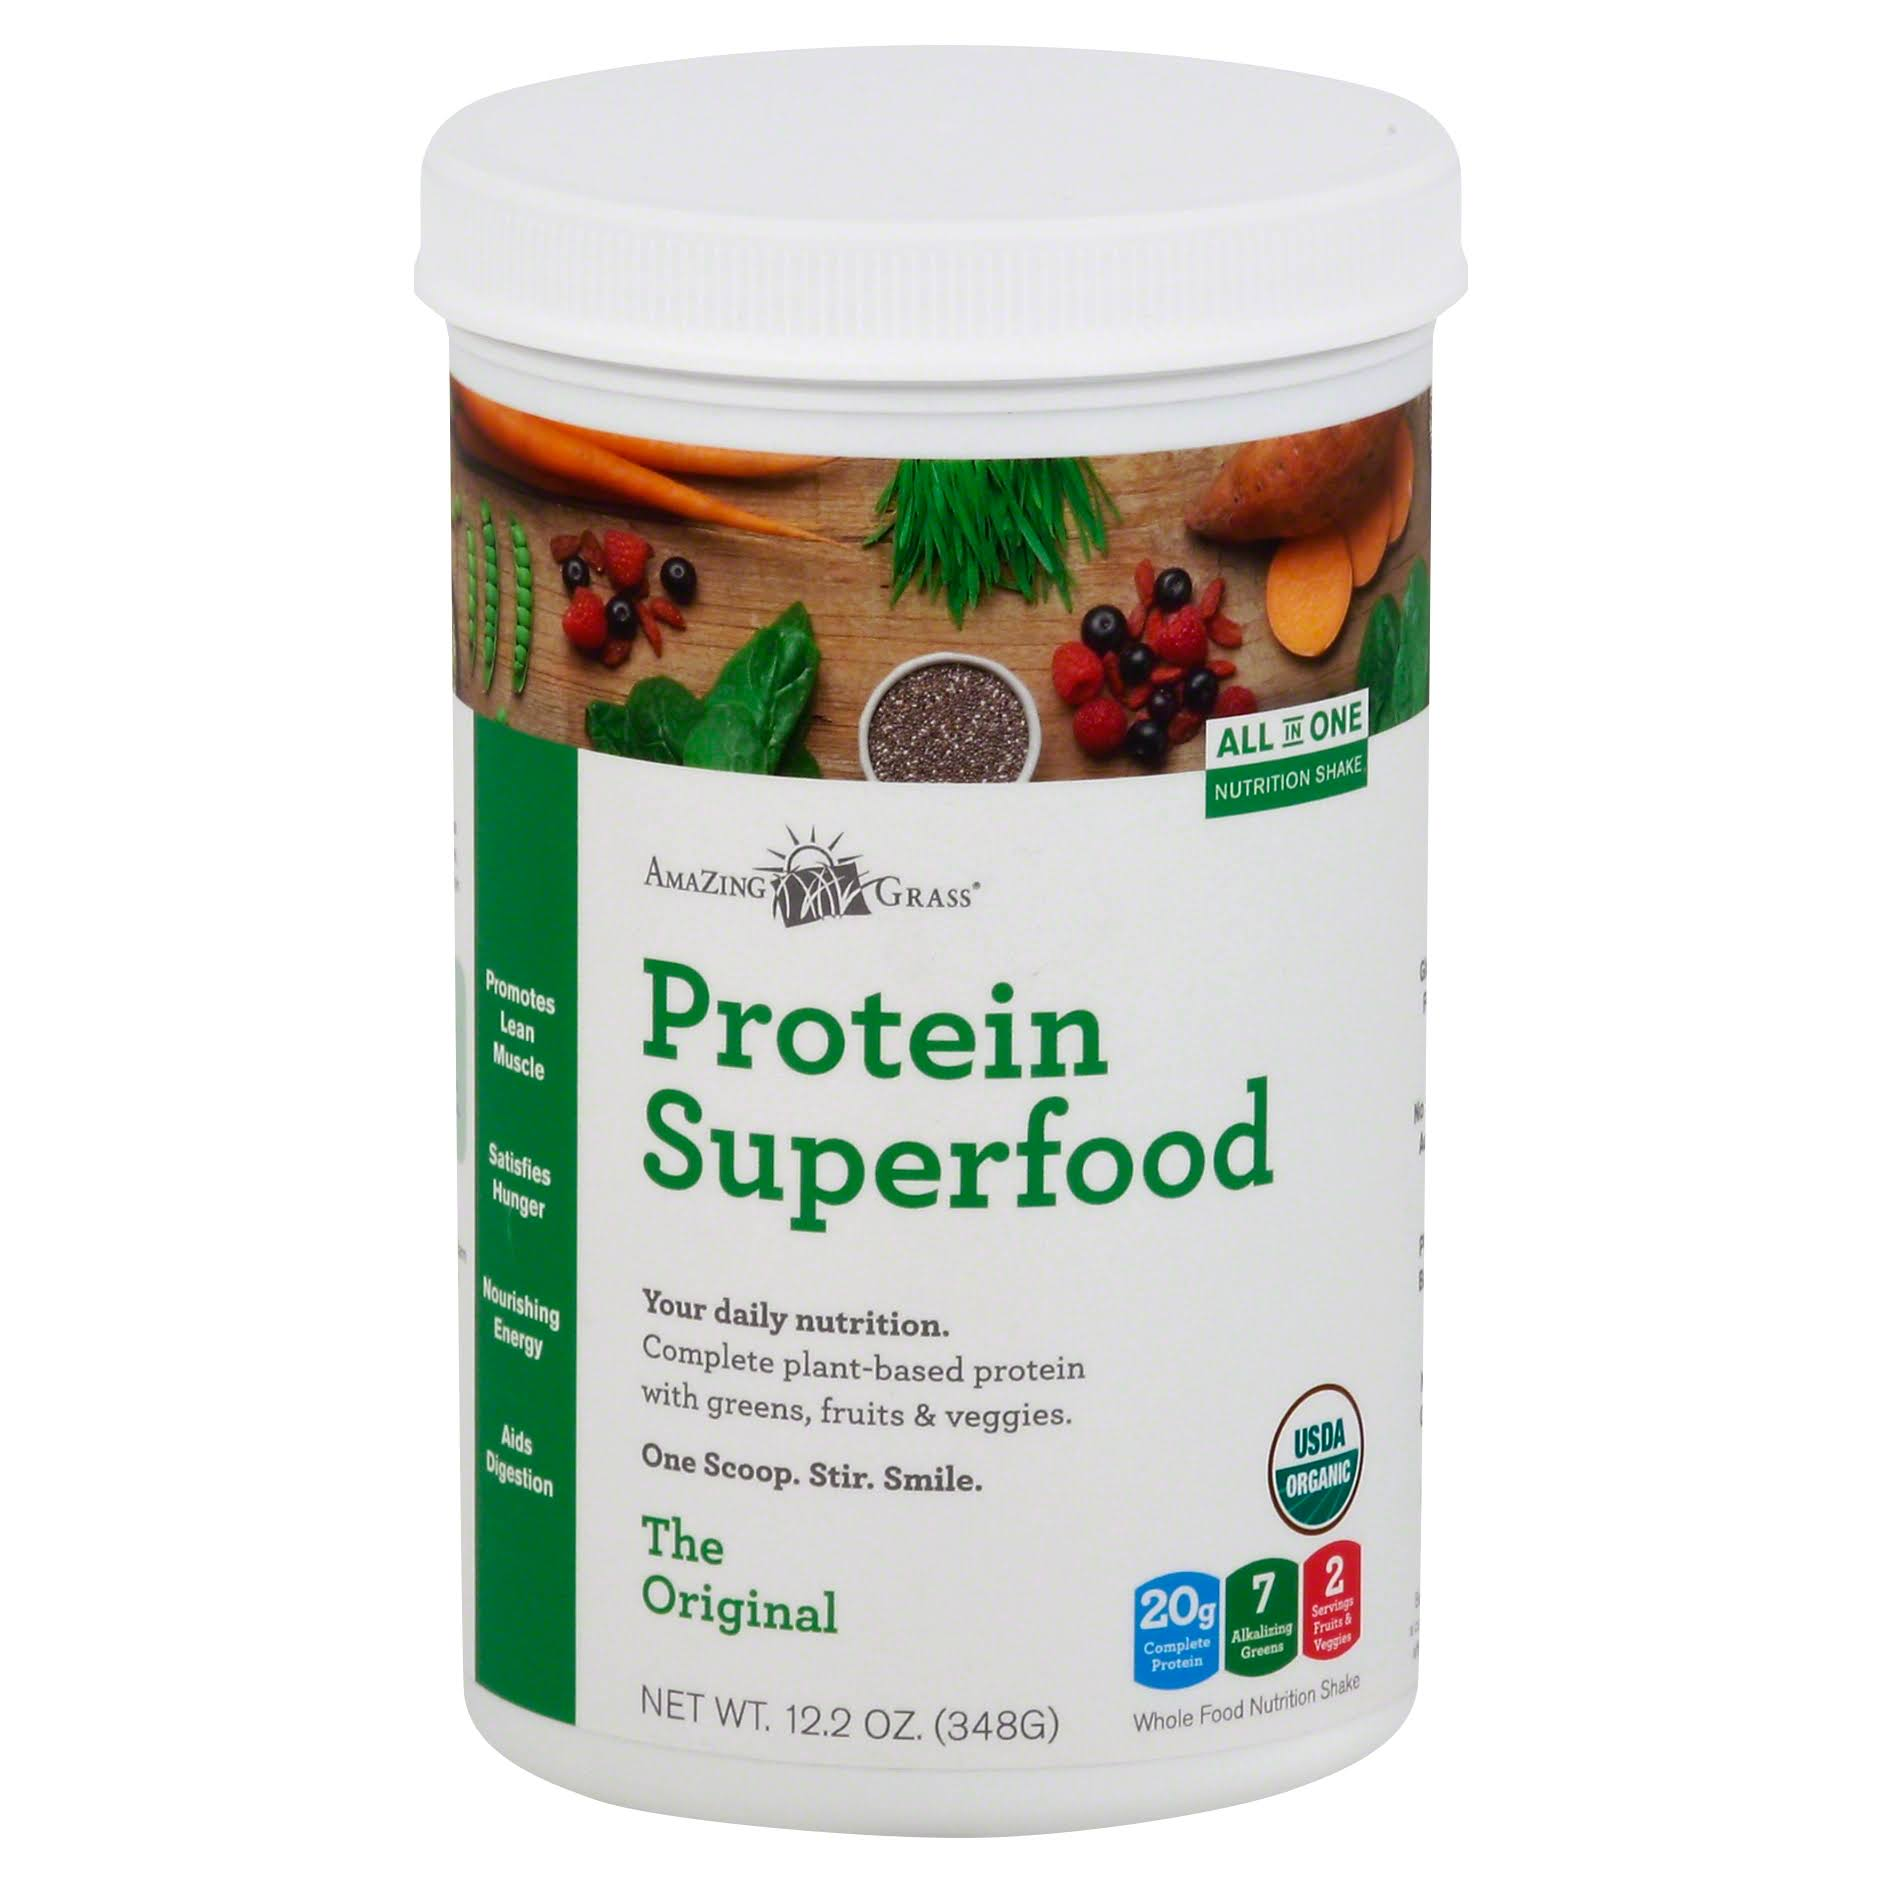 Amazing Grass Protein SuperFood Supplement - The Original, 12.2oz, 12 Servings